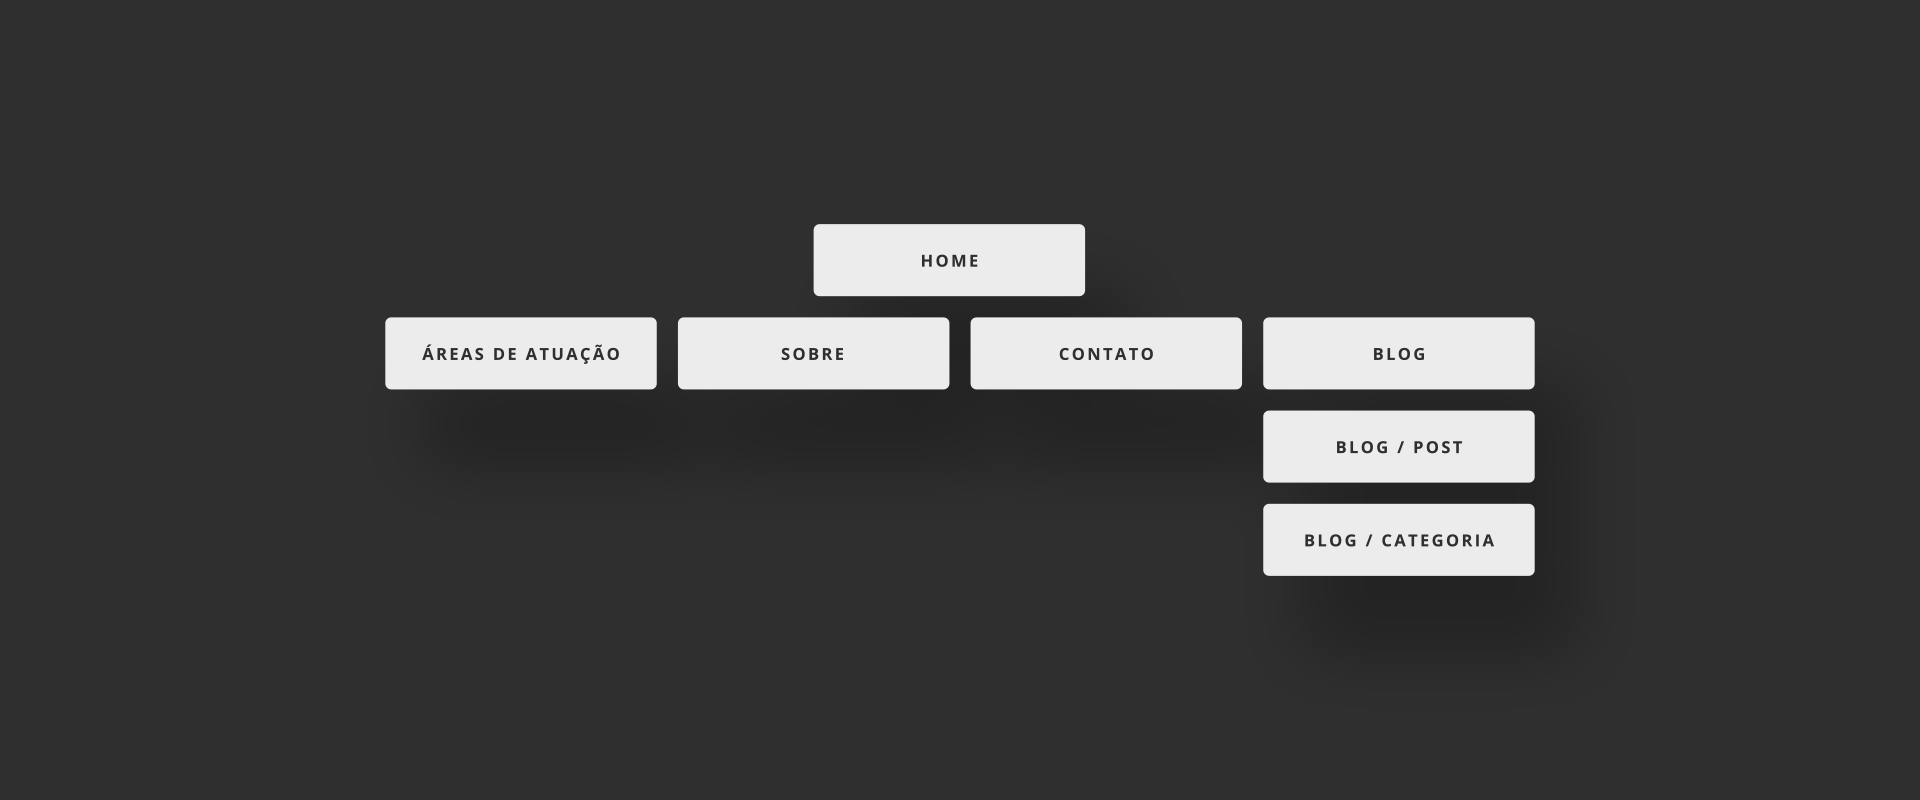 project's sitemap